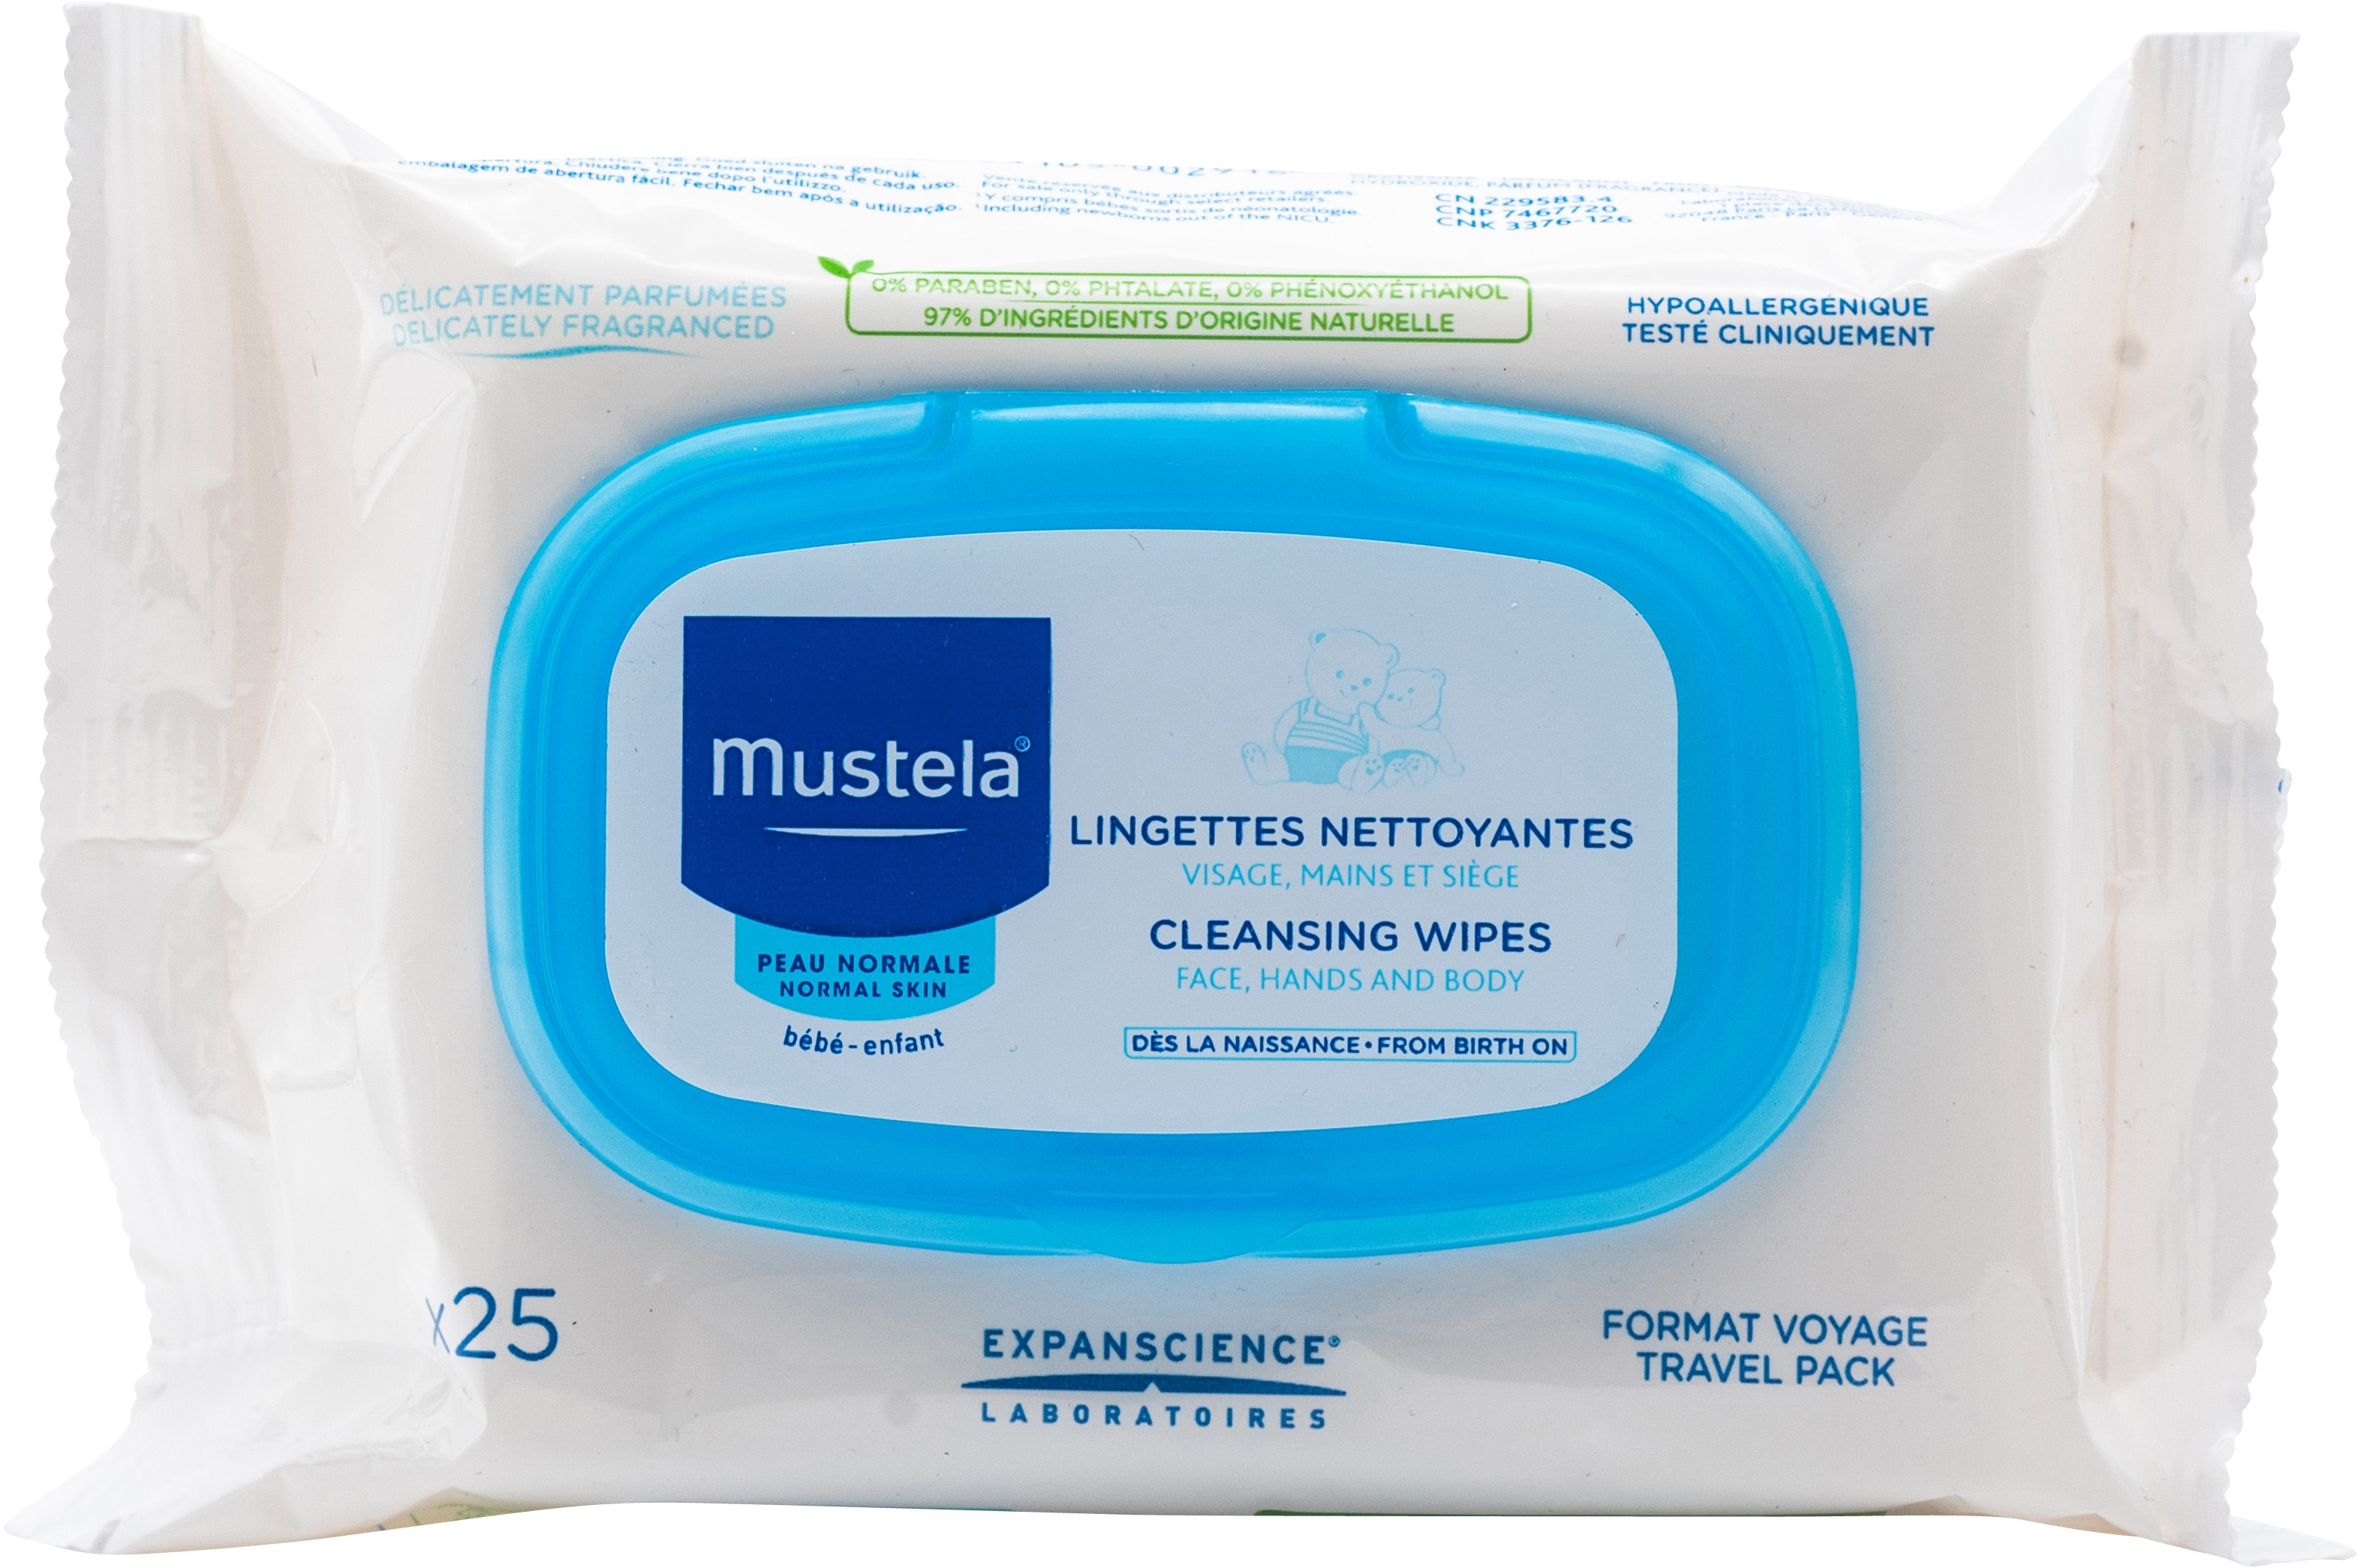 Salviette multiuso / Cleansing wipes - Pelle normale